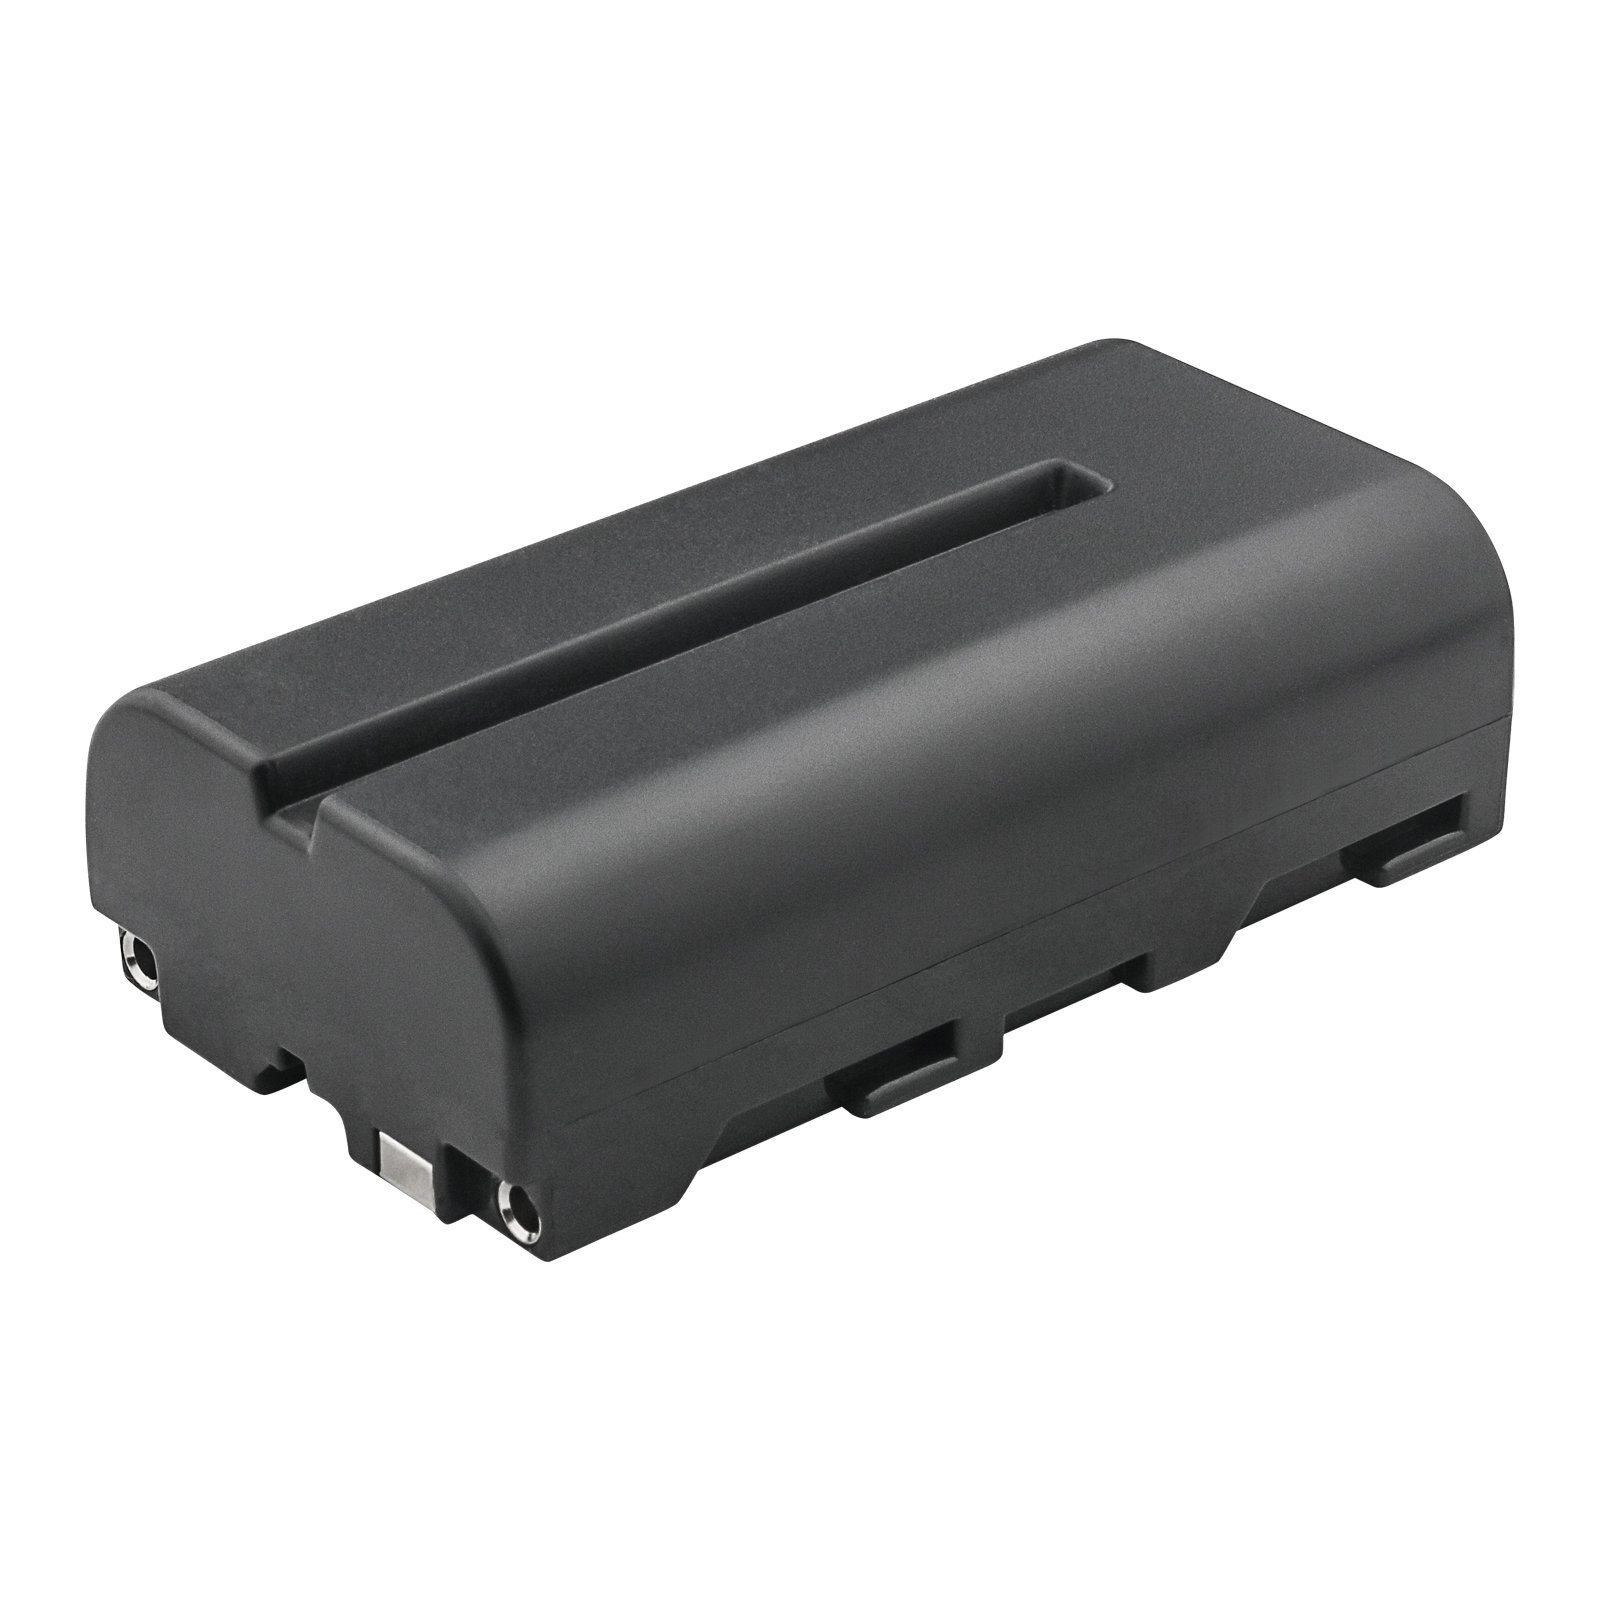 Kastar NP-F570 Battery Replacement for Sony NP-F550 NP-F330 Digital Camera Battery and Sony DCR-SD1000 DCR-SR40 DCR-TRV900 DCR-VX2000 DCR-VX2100 DCR-VX2200 HVR-HD1000 HVR-V1 HVR-Z1 HVR-Z5 HVR-Z7